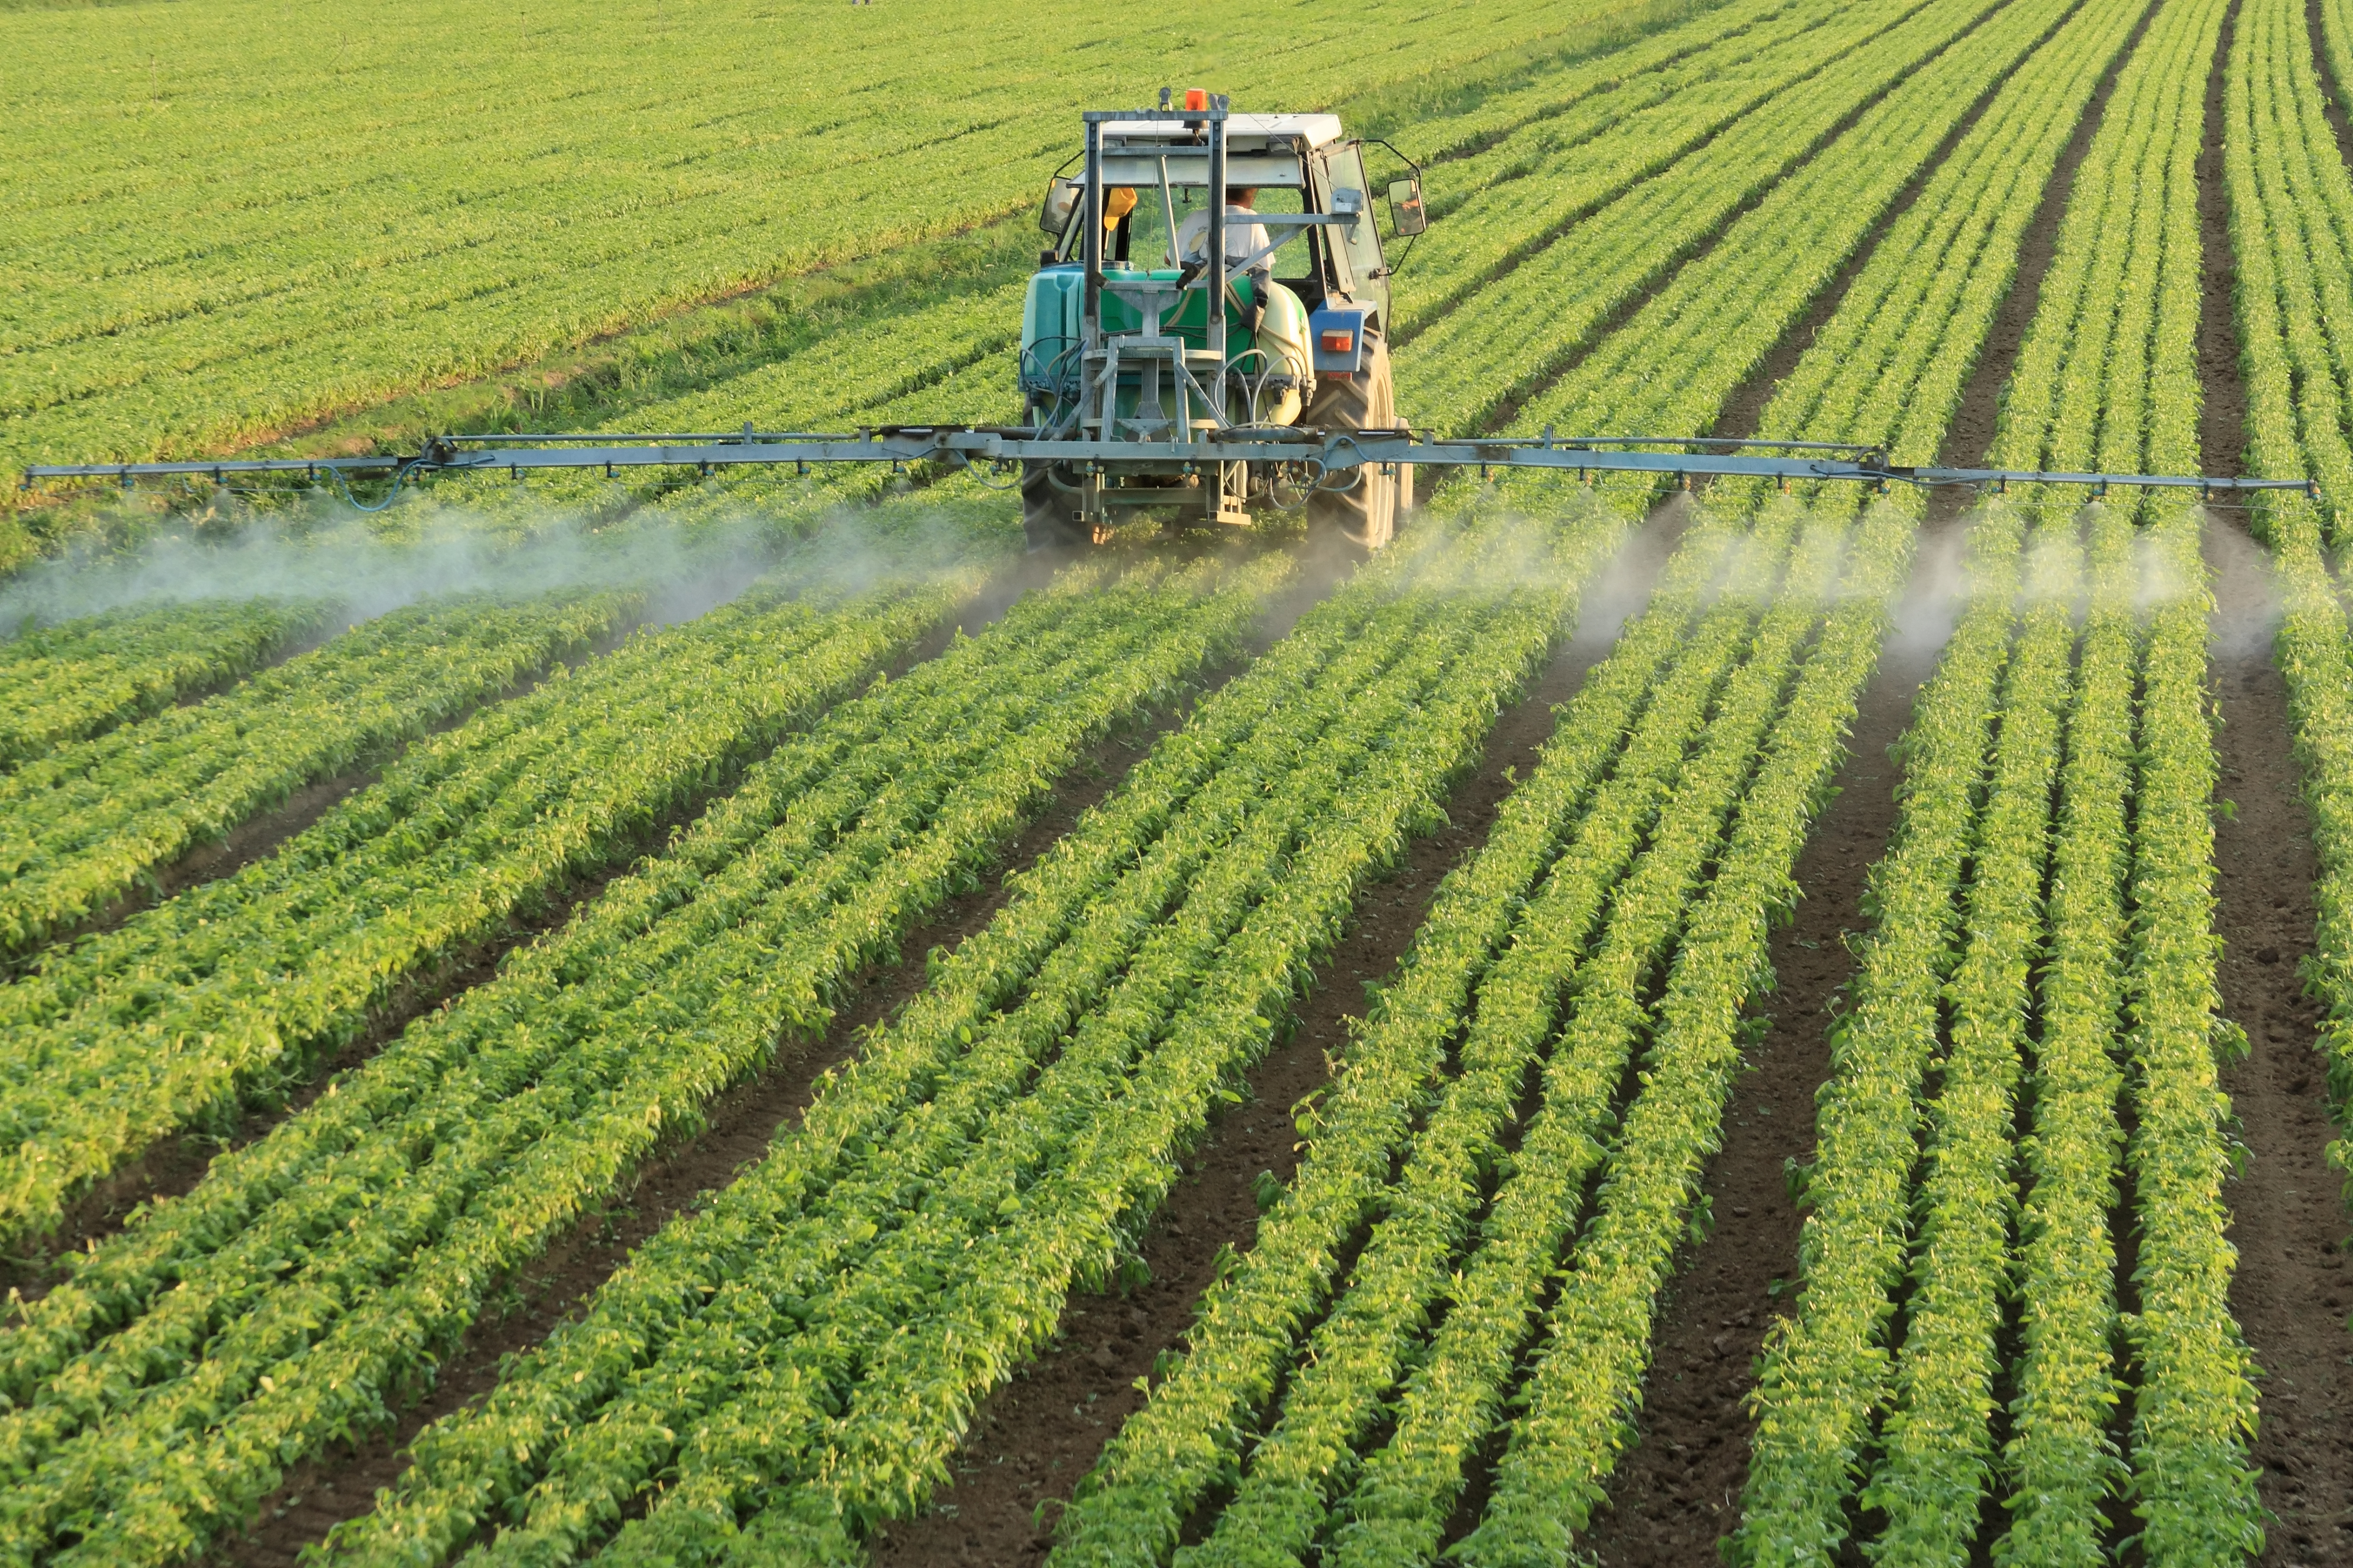 farming tractor spreading pesticides